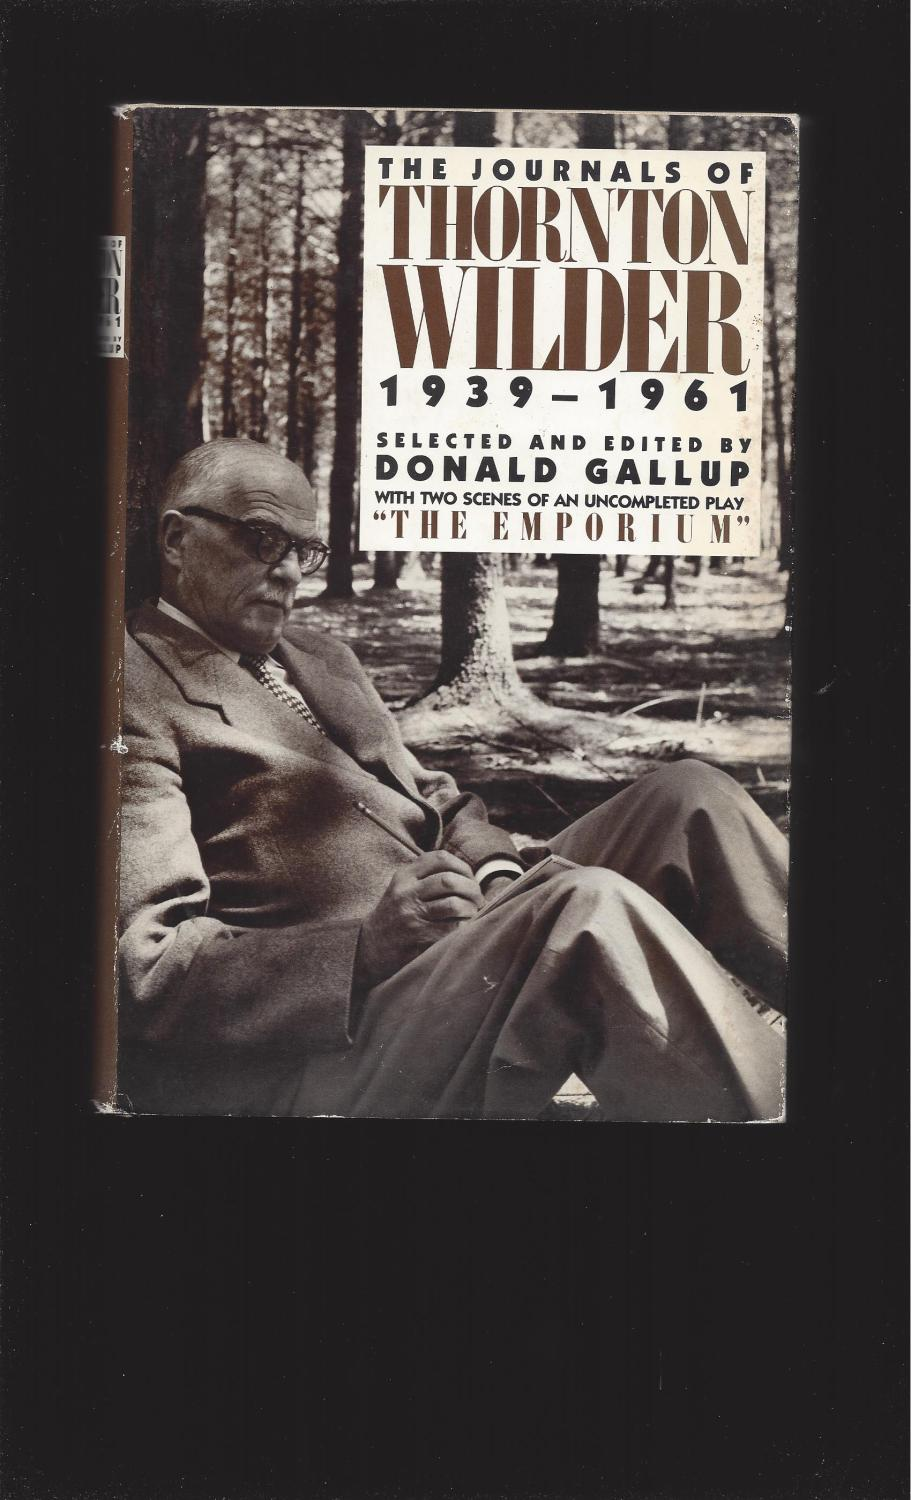 a biography of thornton wilder an american writer He is especially proud of assistance given to penelope niven, author of thornton wilder: a life, a biography published by harpercollins in 2012 he is a member of pen-american center, a trustee of the yale library associates, and an honorary trustee of long wharf theatre (new haven.